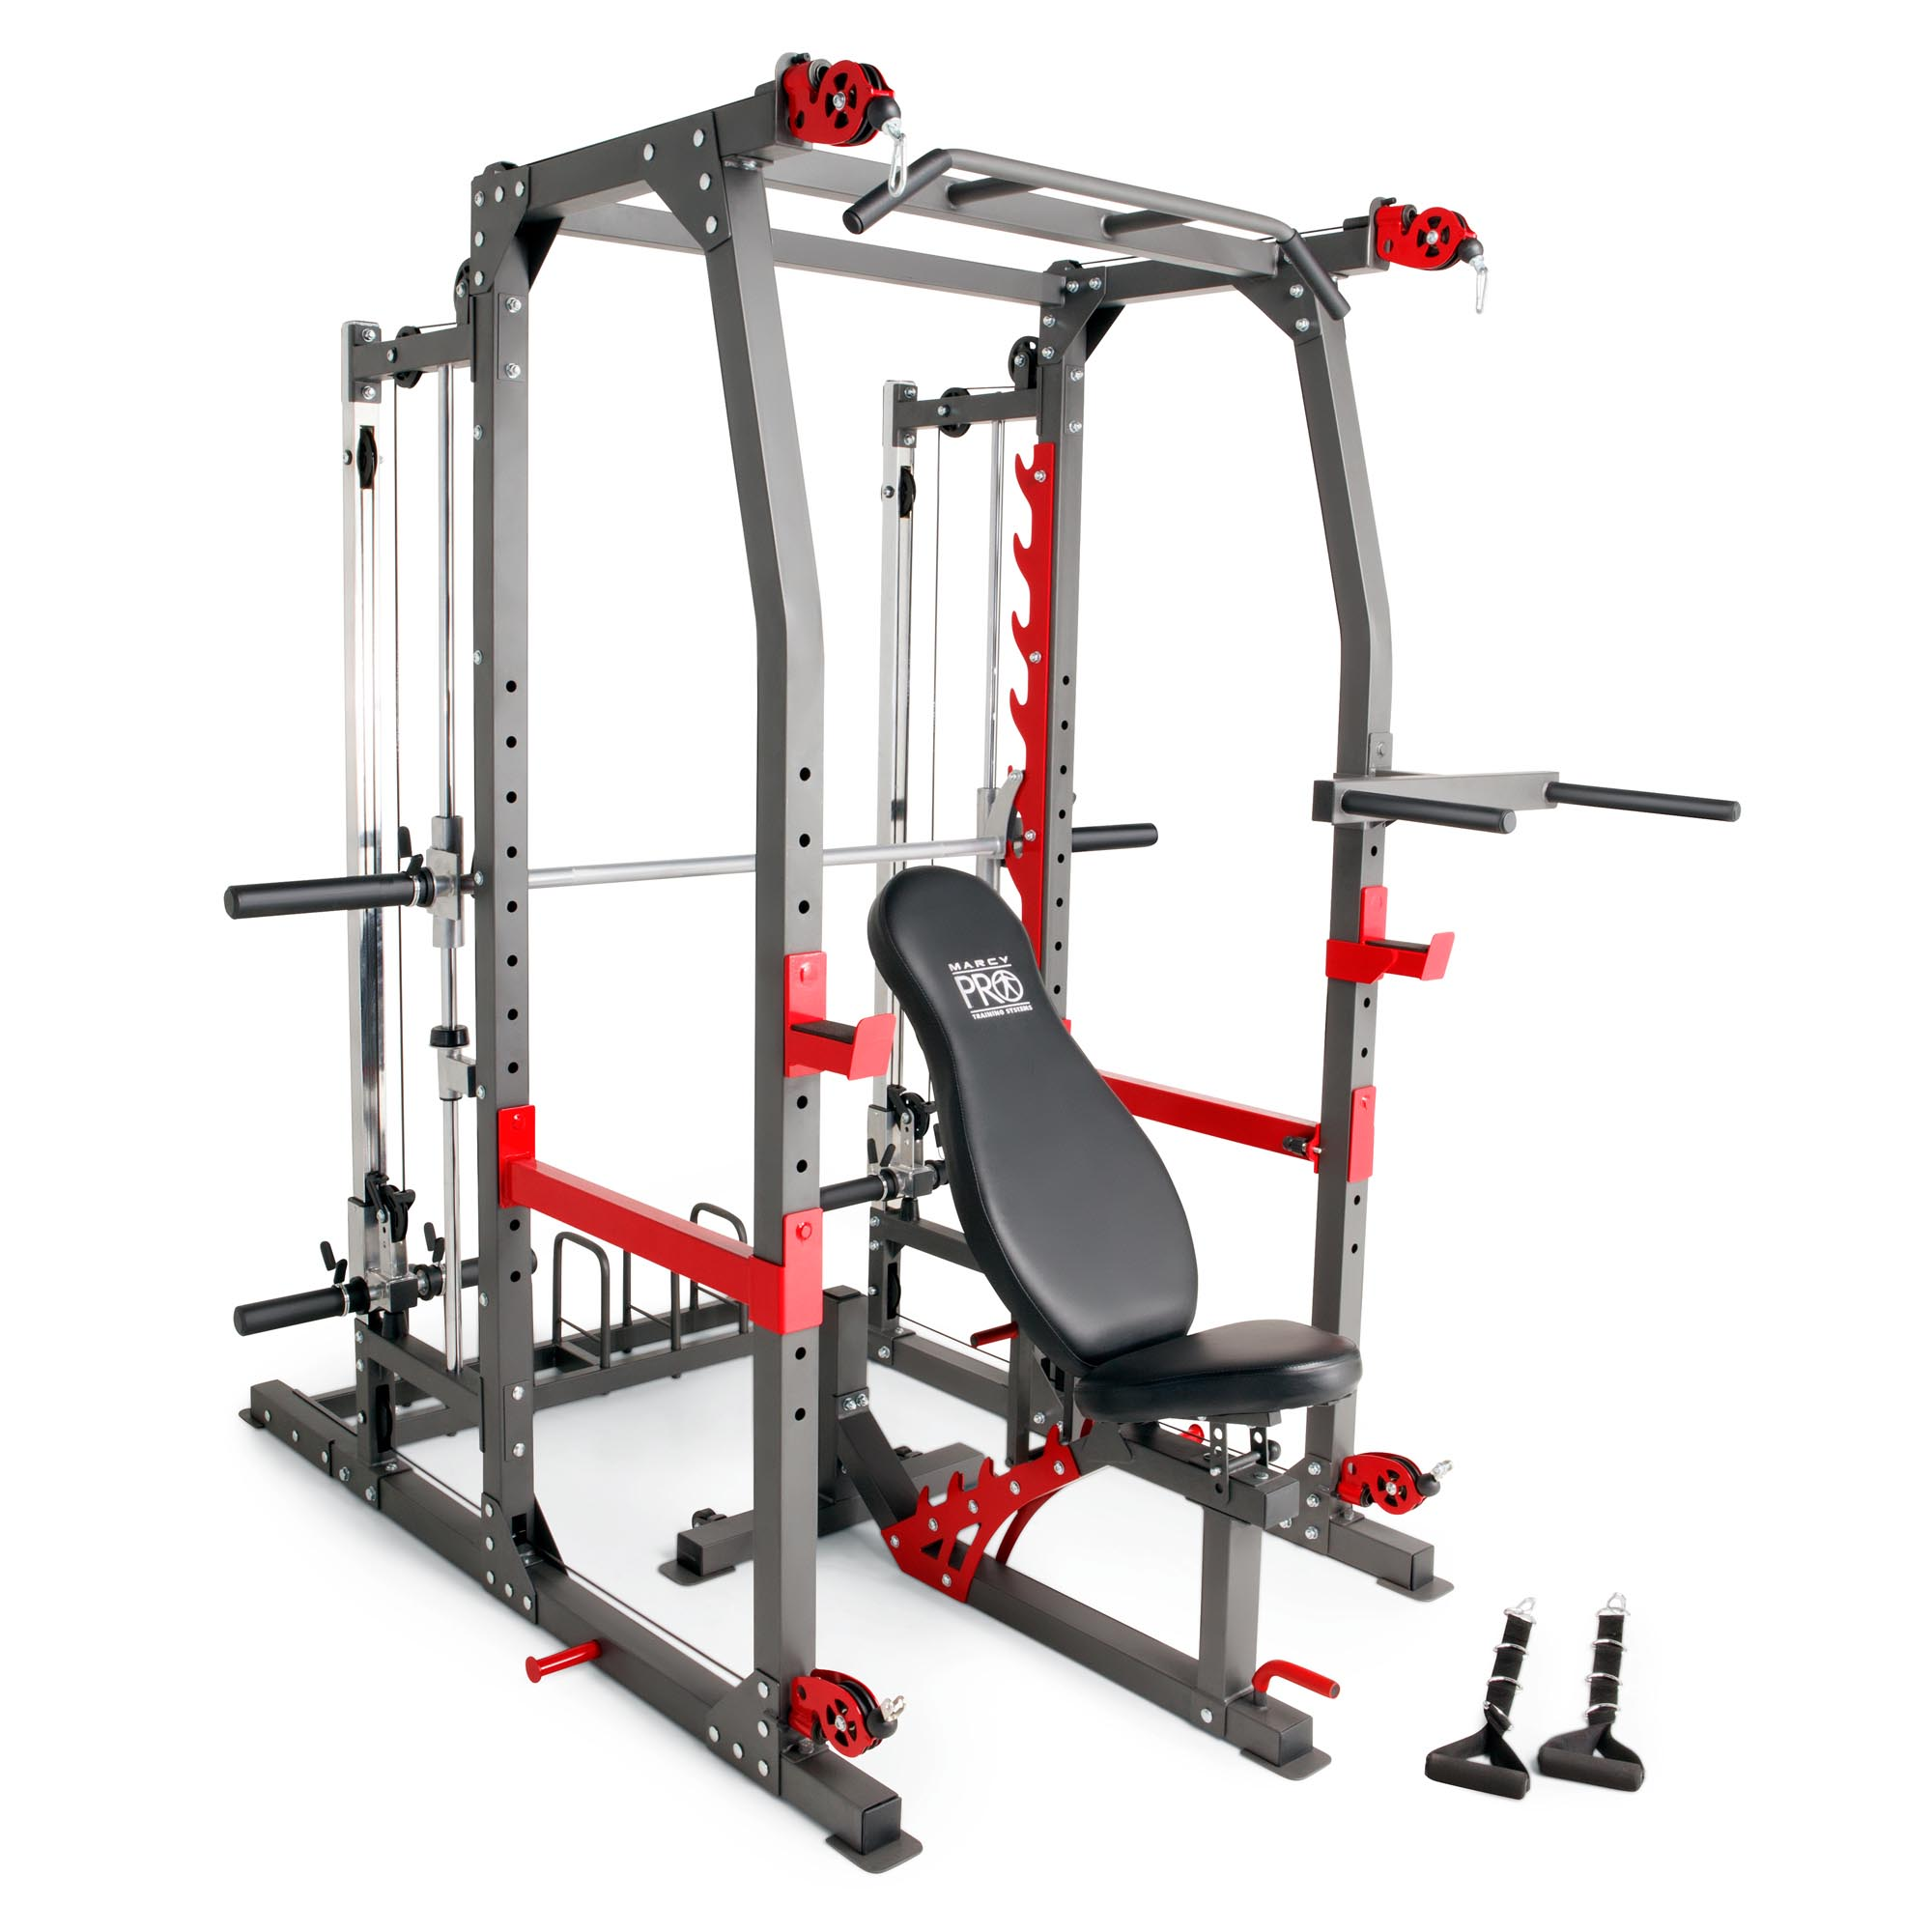 Marcy Pro Smith Machine Weight Bench Home Gym Total Body Workout Training System Ebay